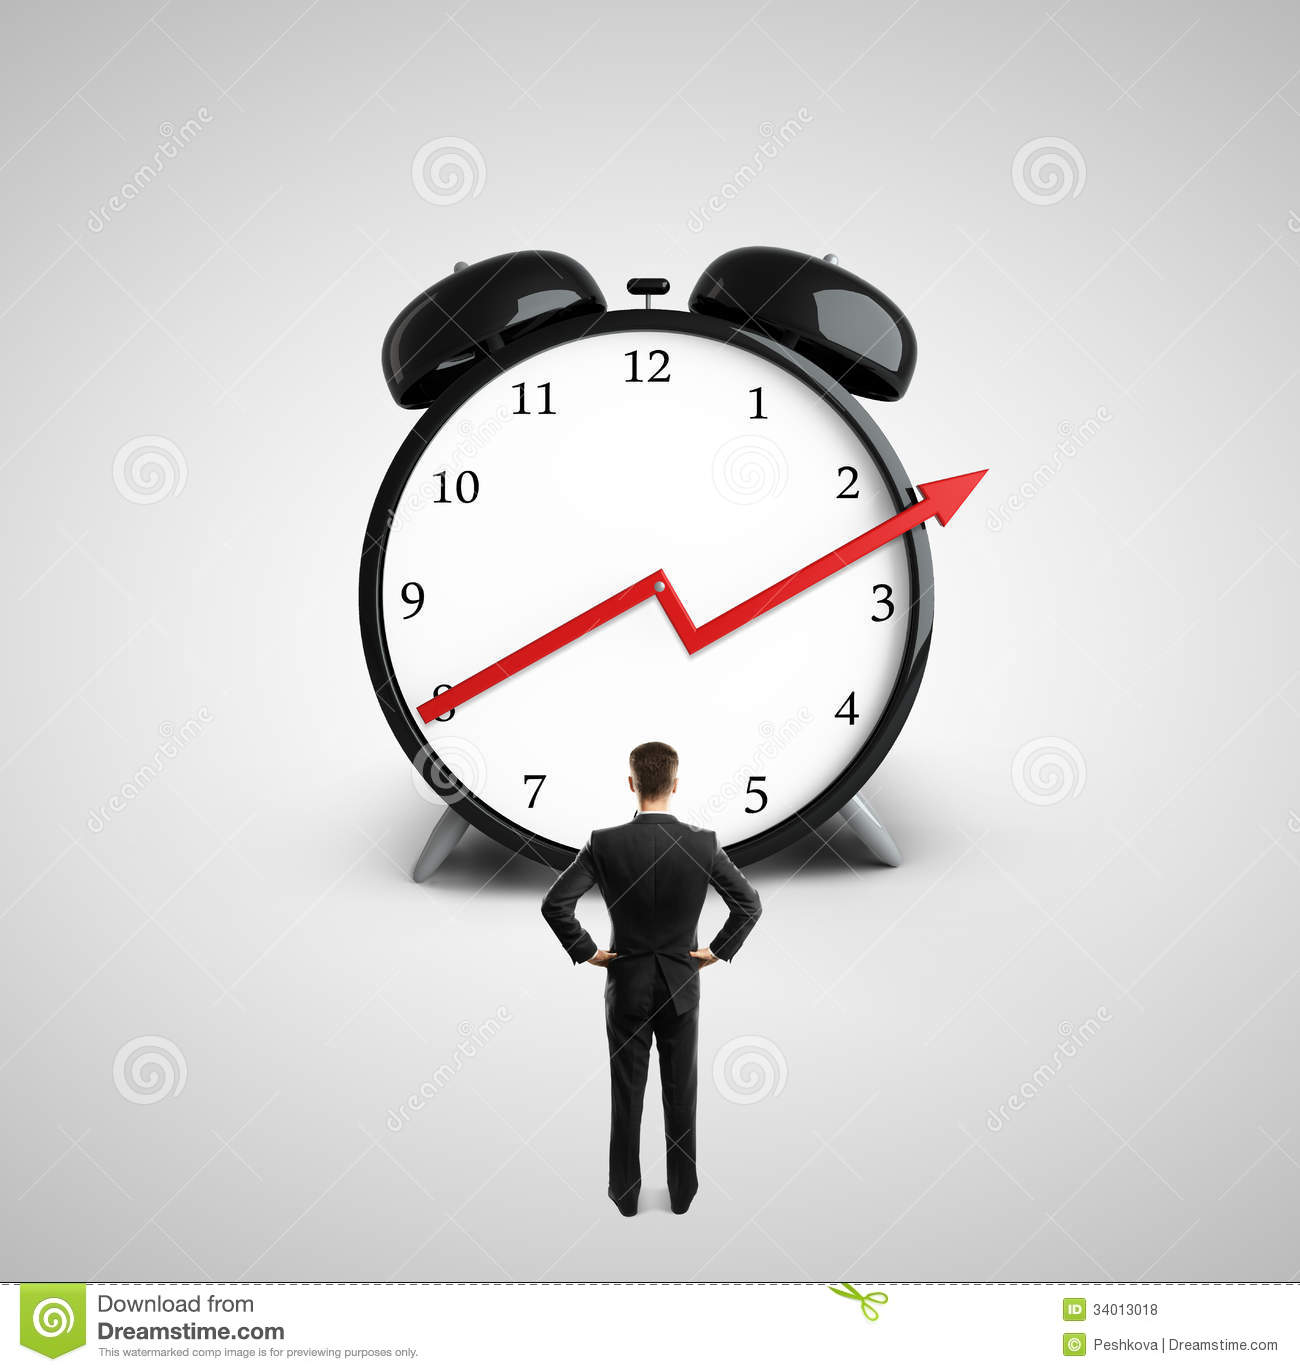 Growth arrow clipart clock clip free download Man Looking At Clock Royalty Free Stock Photos - Image: 34013018 clip free download